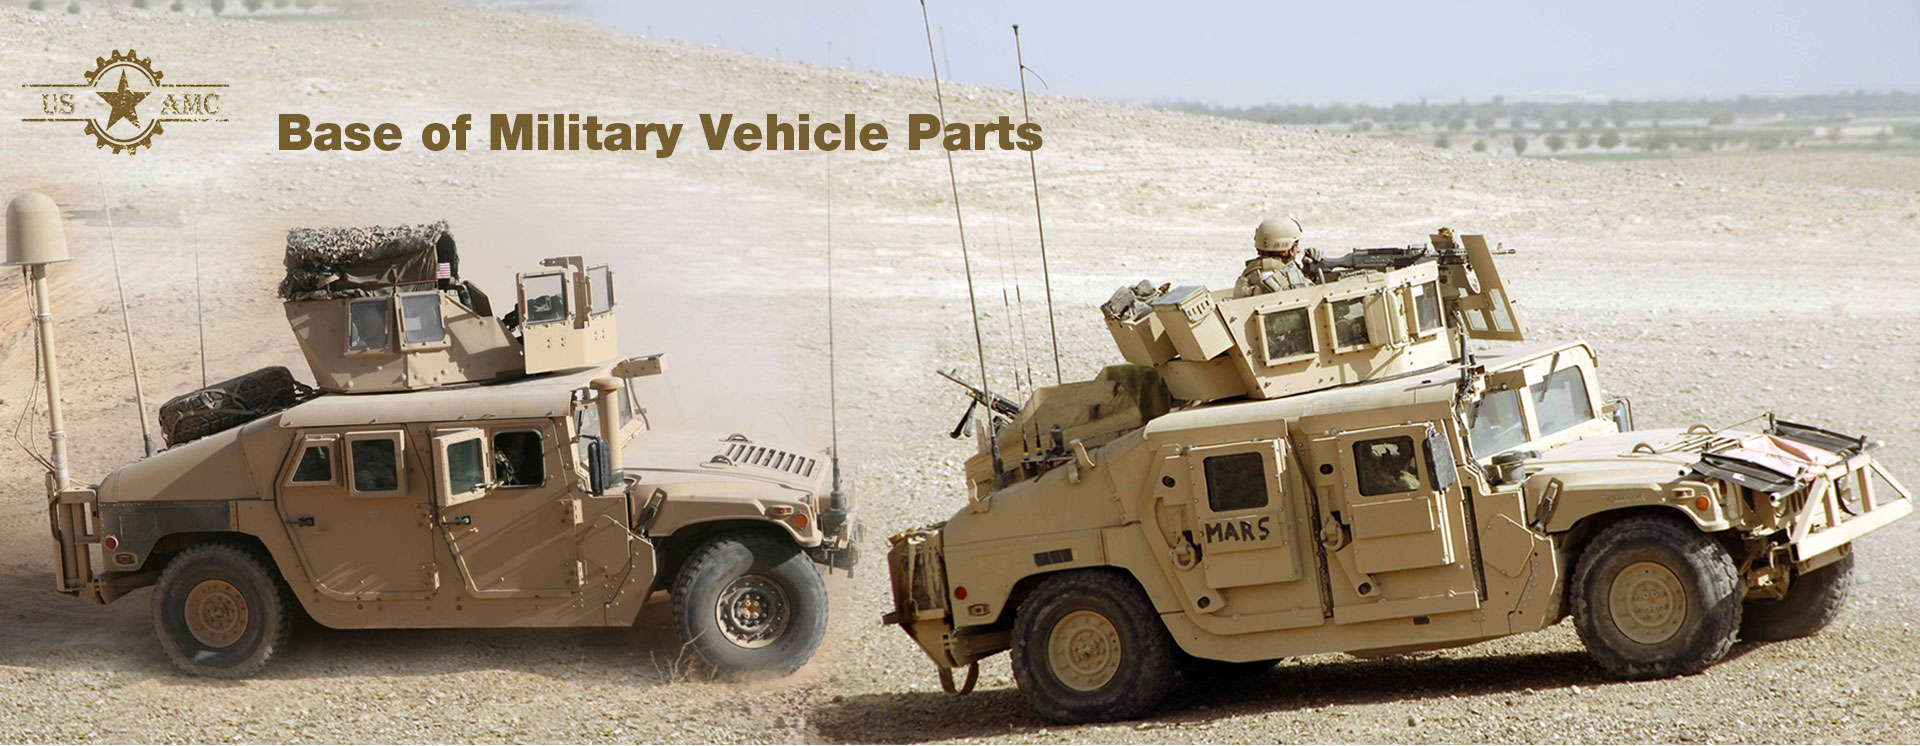 Base of Military Vehicle Parts